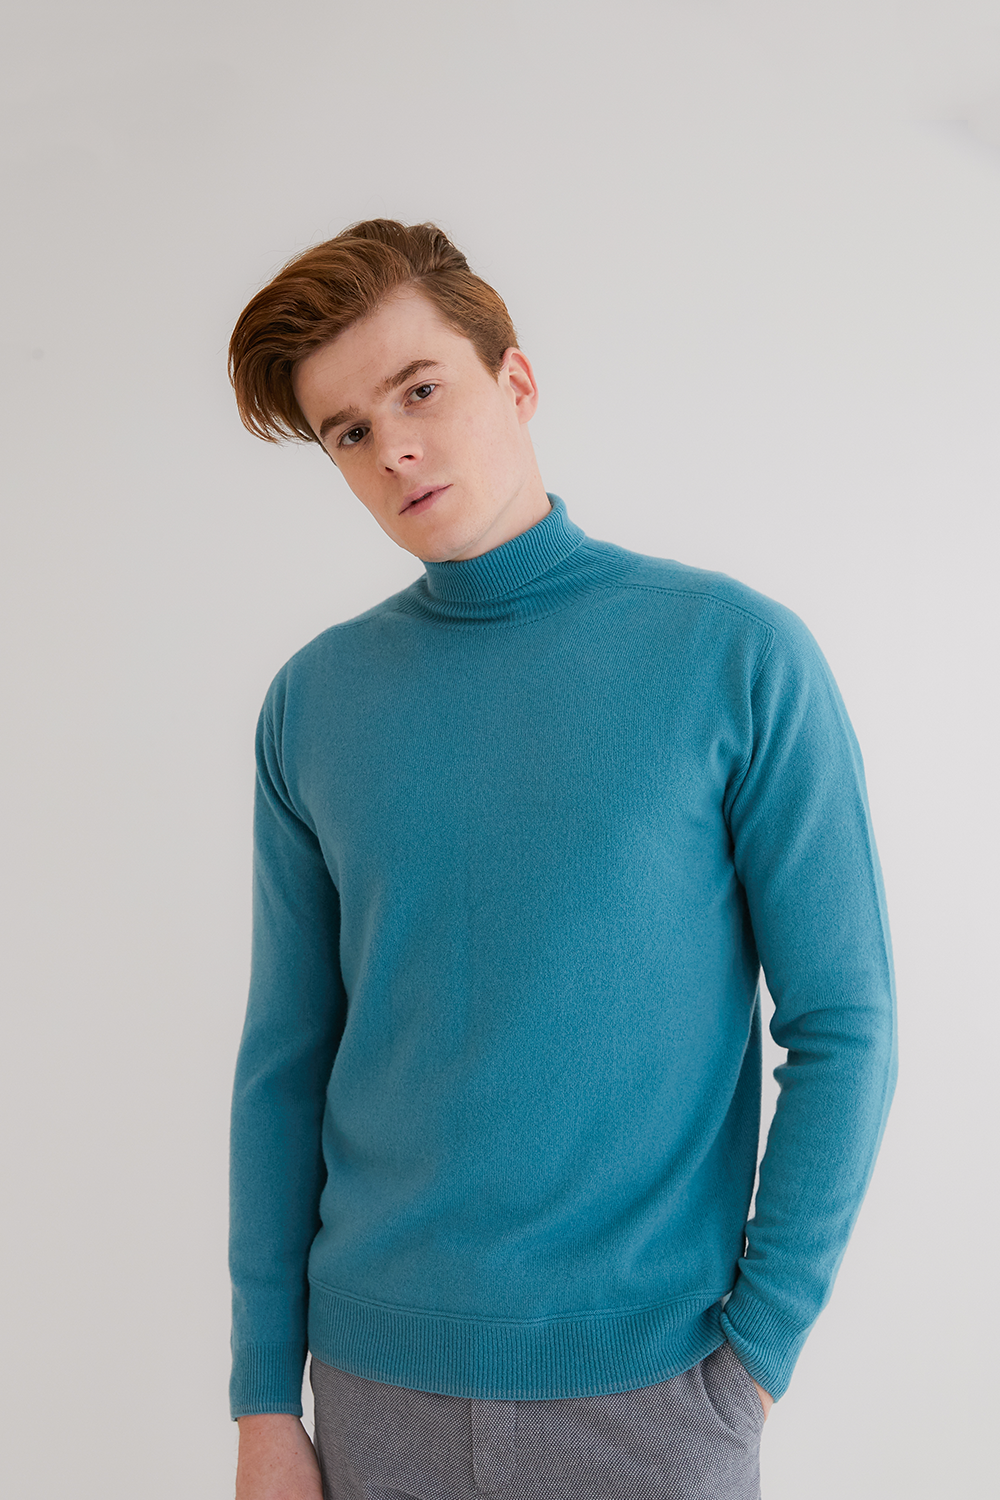 프리미엄 캐시미어100 남성 스웨터 [Pure cashmere100 turtleneck sweater by whole-garment knitting - Turquoise blue]